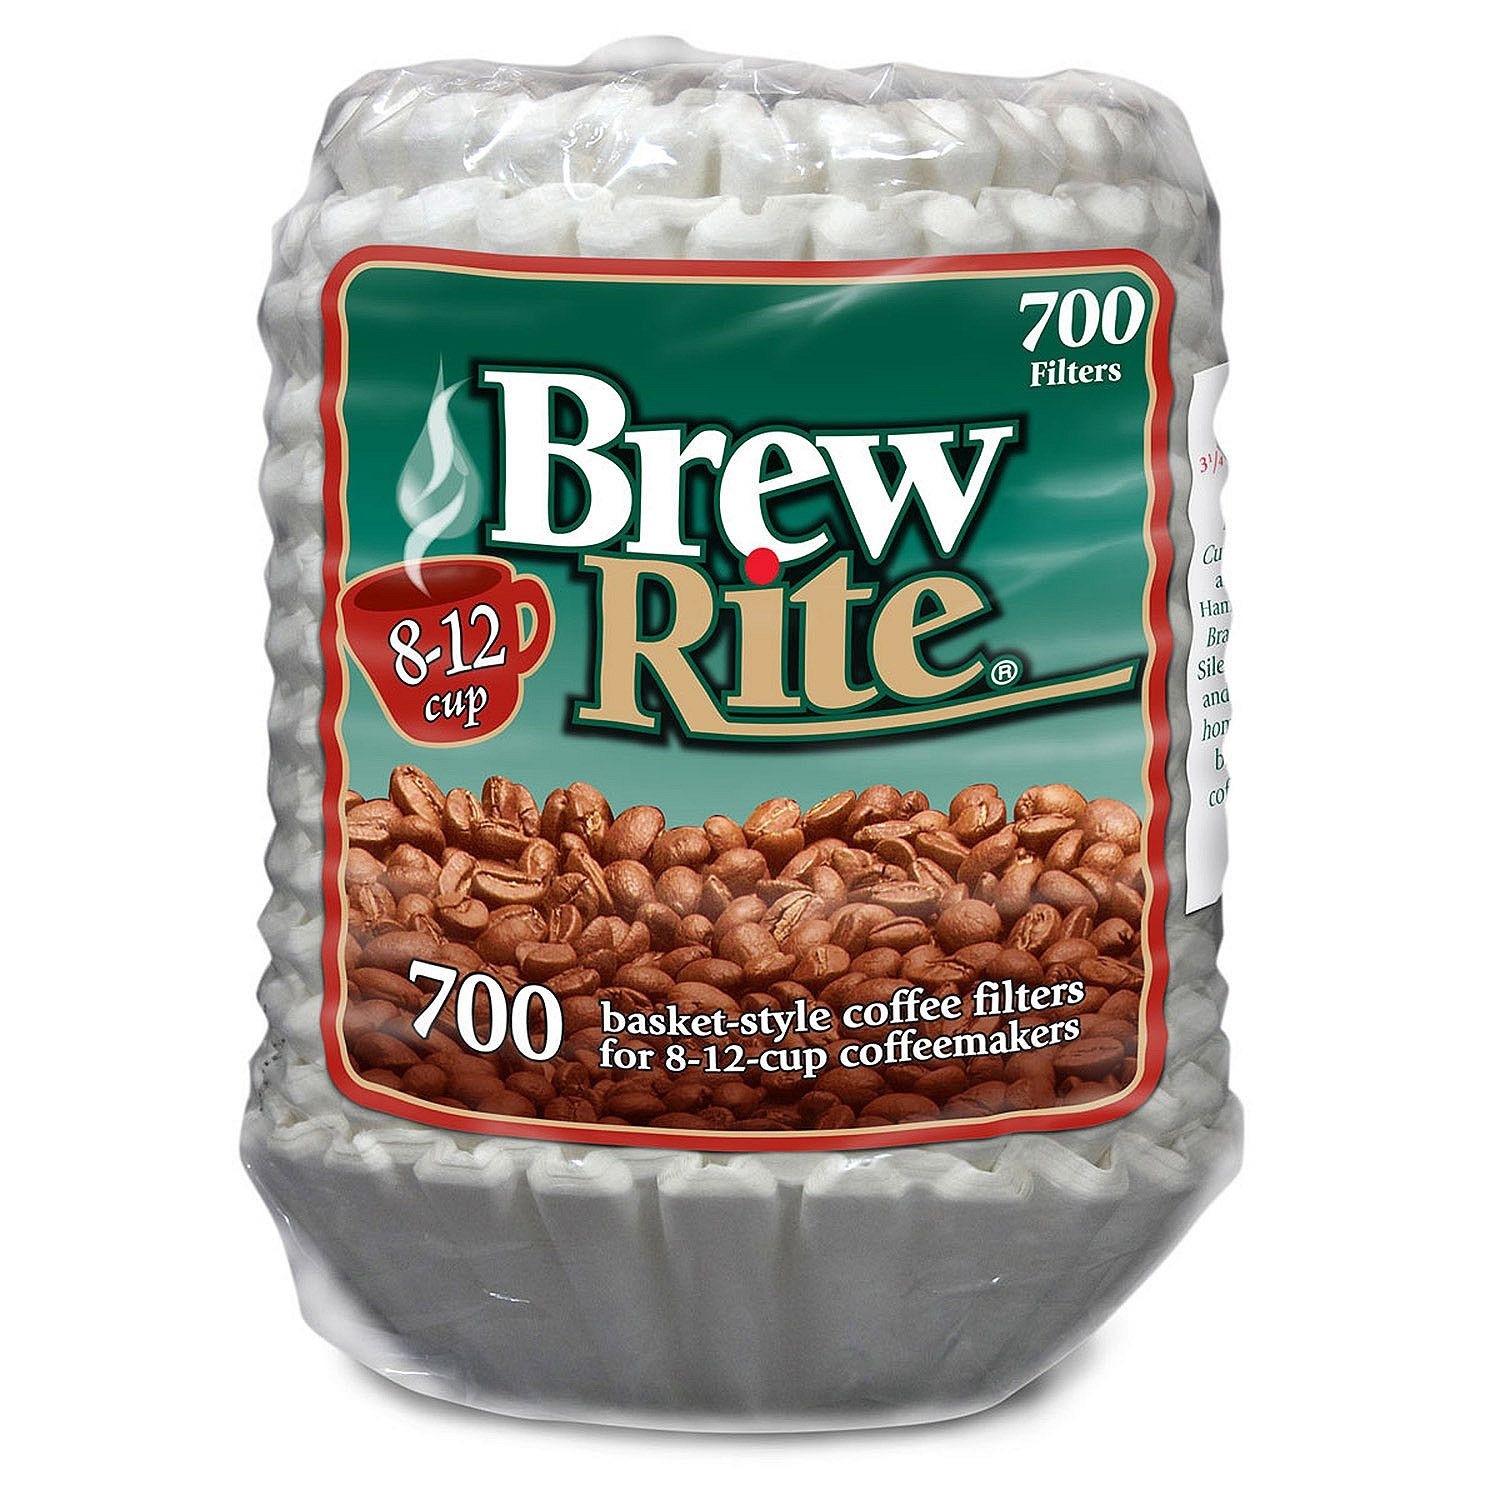 Brew Rite Coffee Filter 700 ct. by Brew Rite